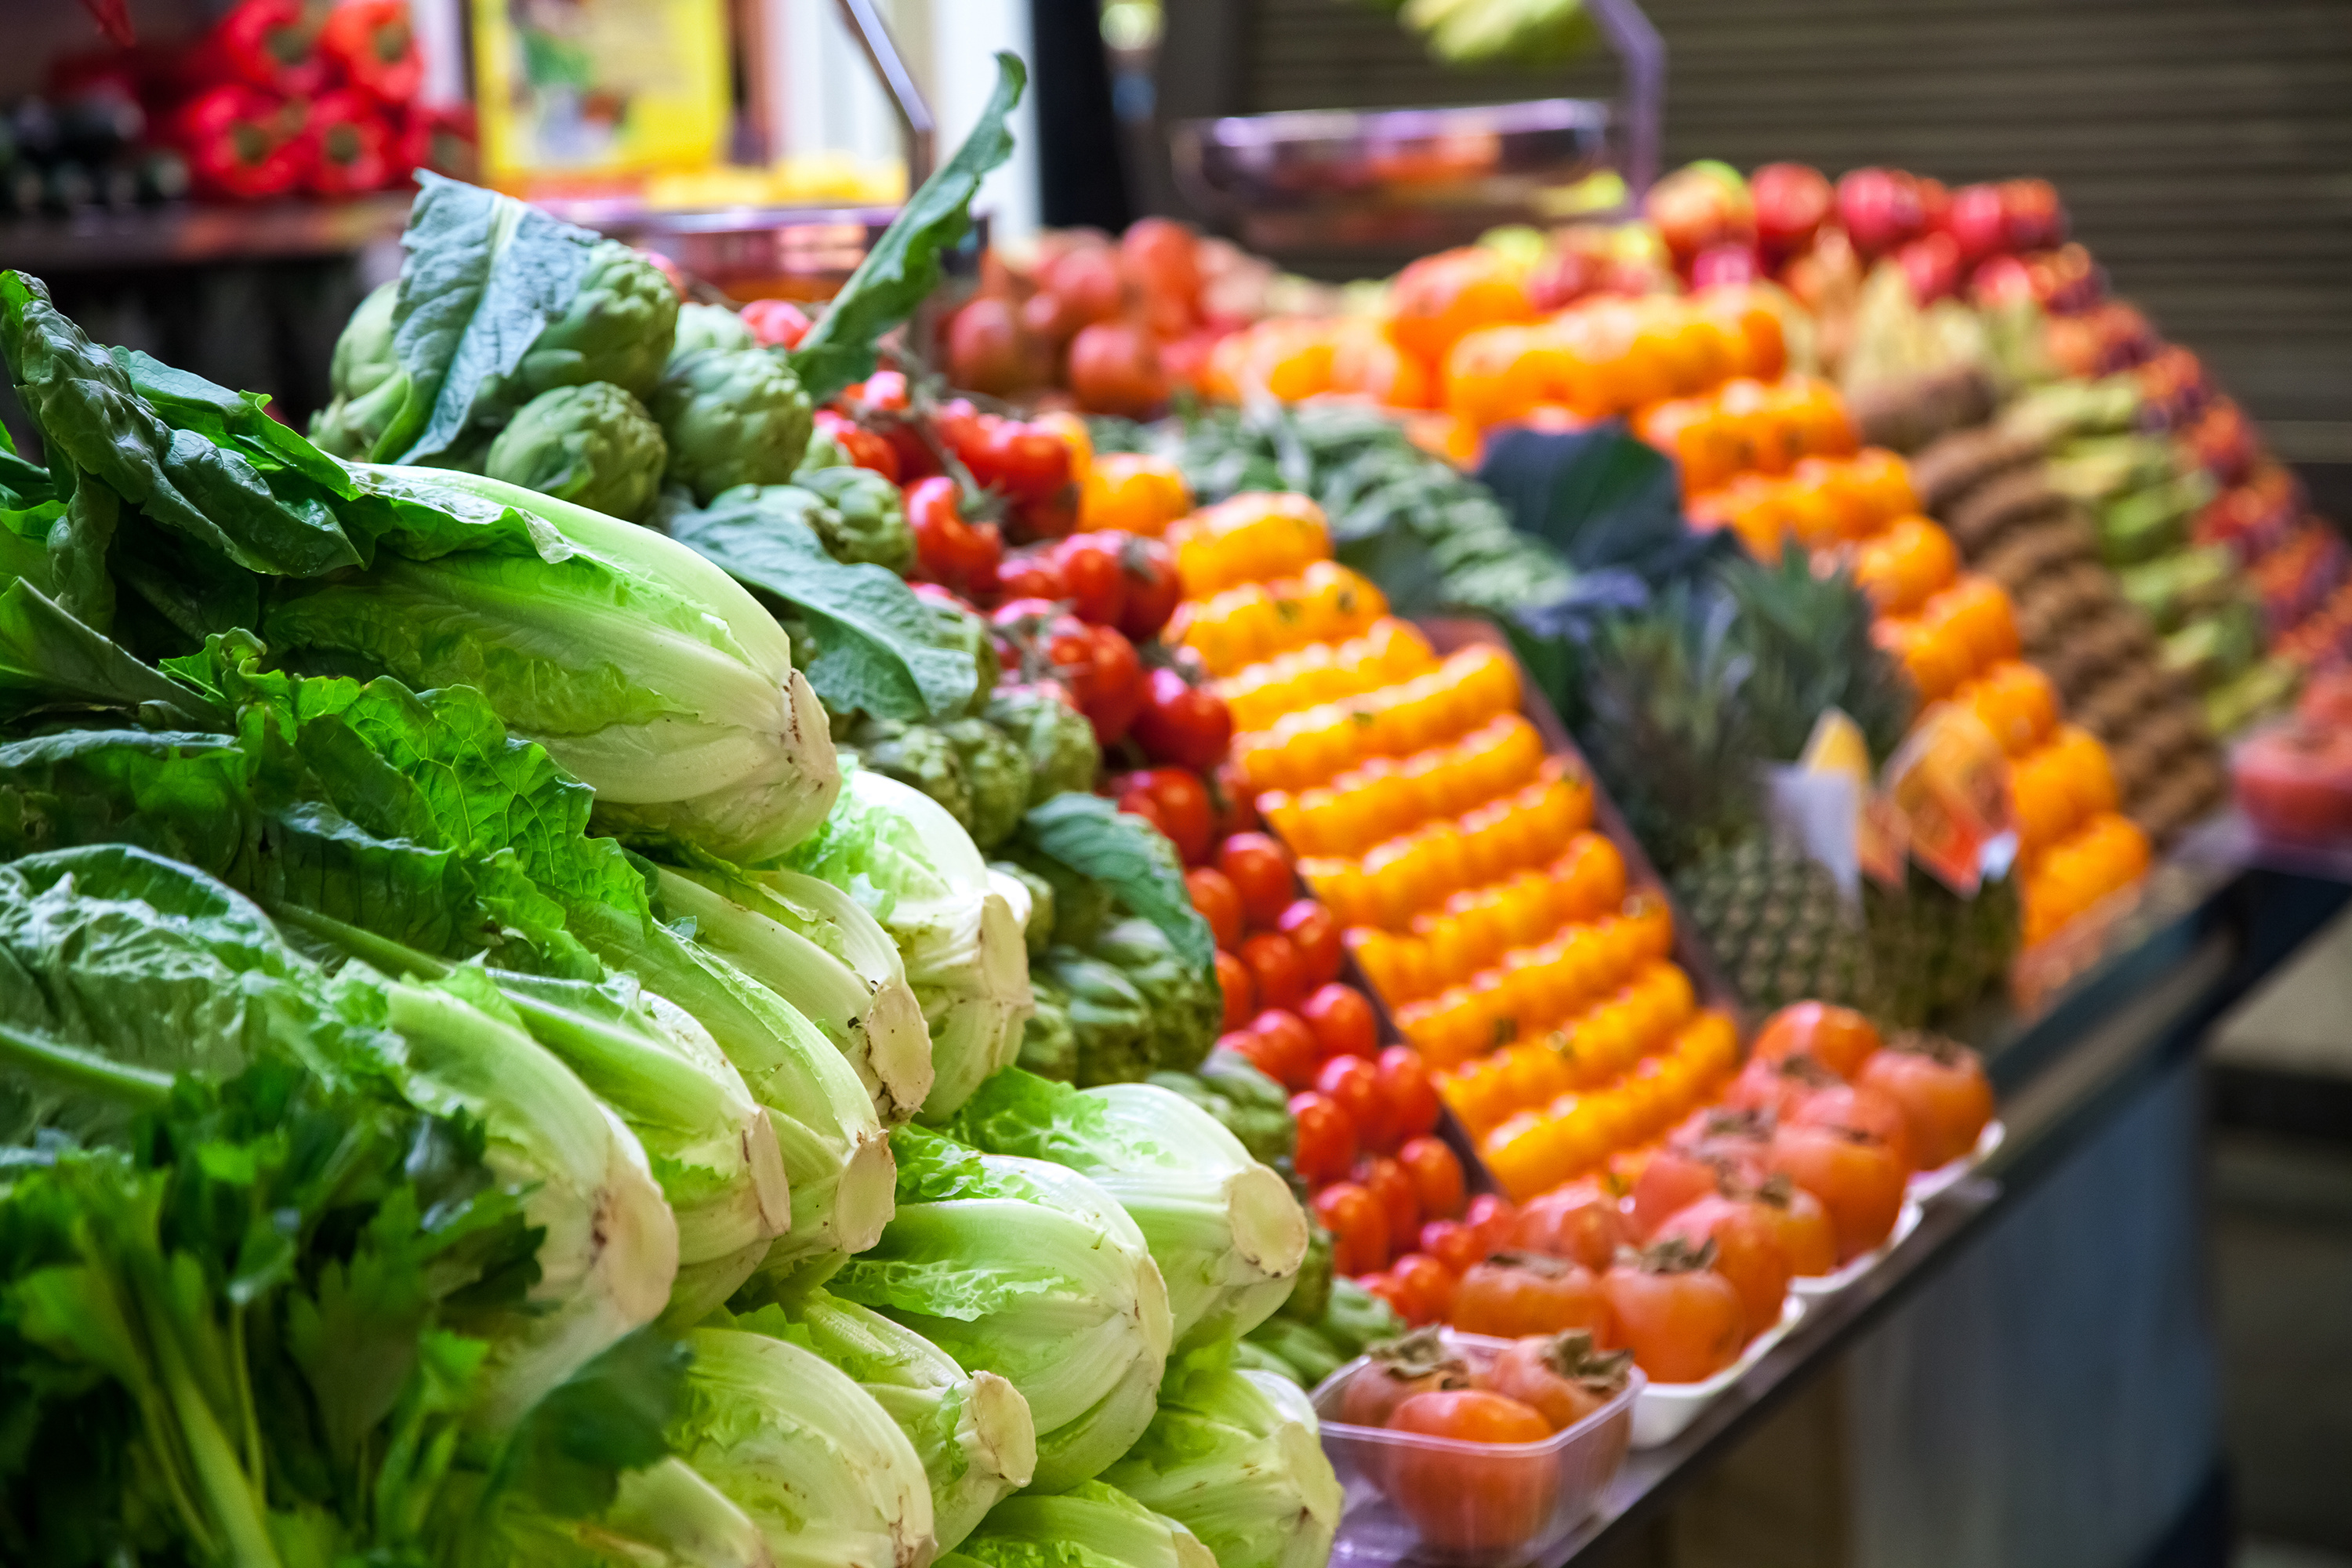 Article image for Melbourne fruit and vegetable business caught paying workers just $10 an hour